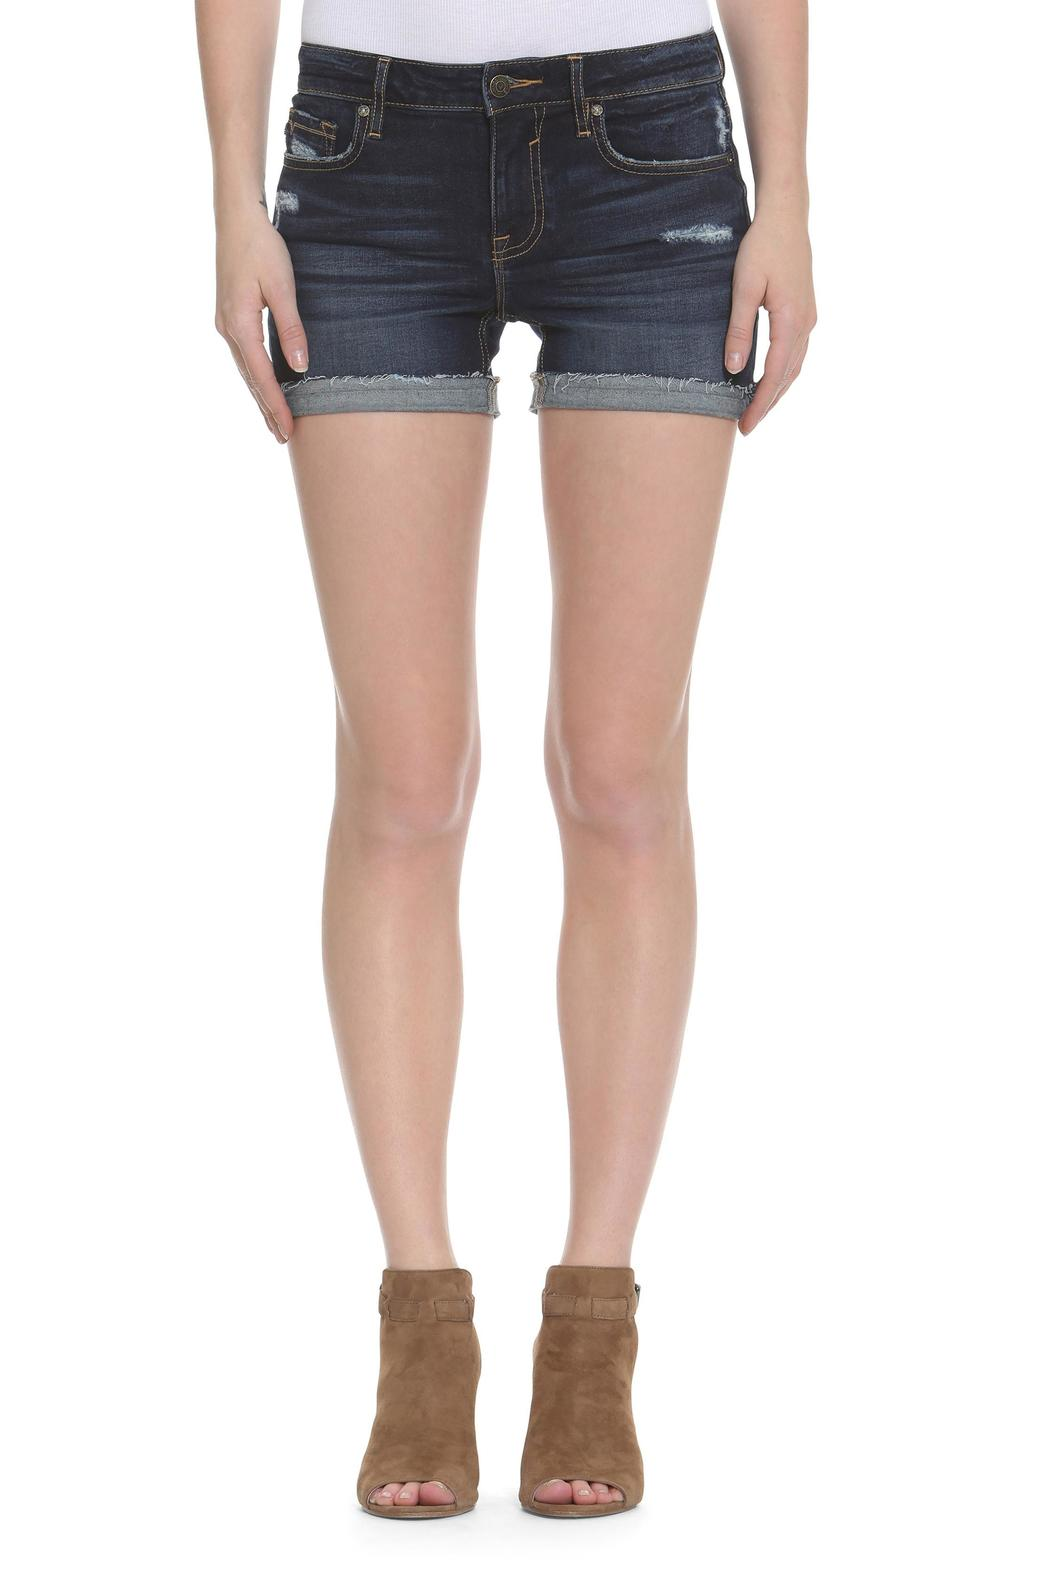 Vigoss Dark Wash Distressed Shorts - Front Cropped Image